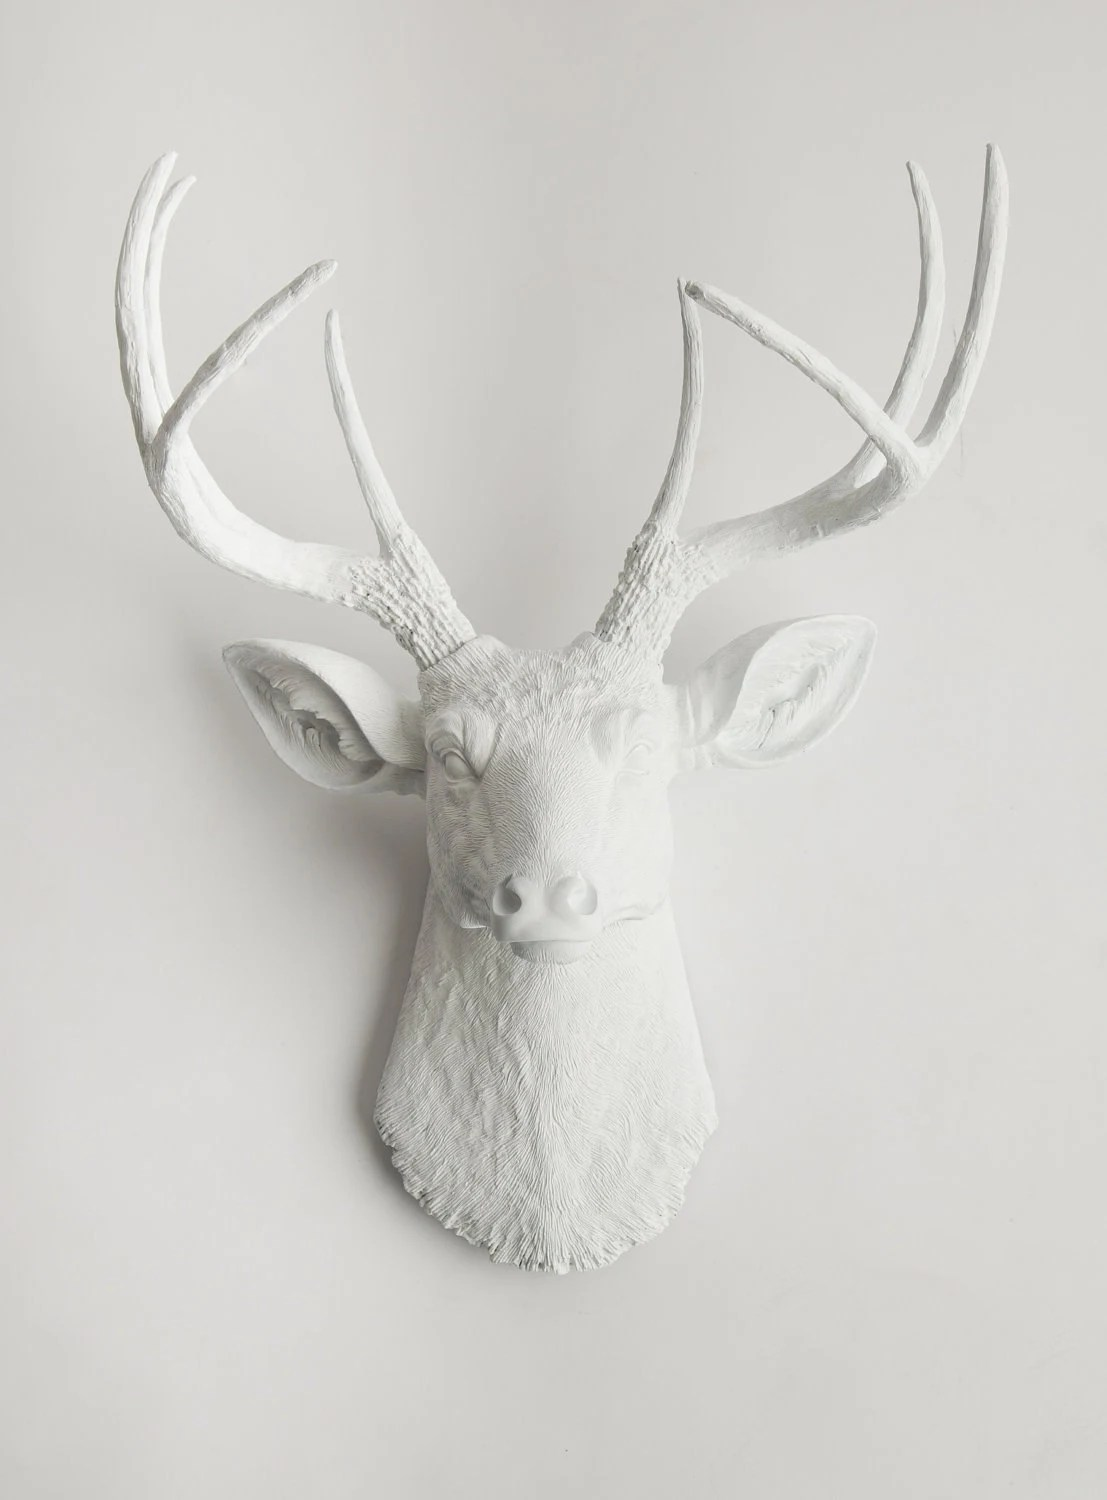 White Deer Head - The Templeton - White Resin Faux Deer Head- White Deer Antlers Mounted- Fake Head Wall Mount - WhiteFauxTaxidermy